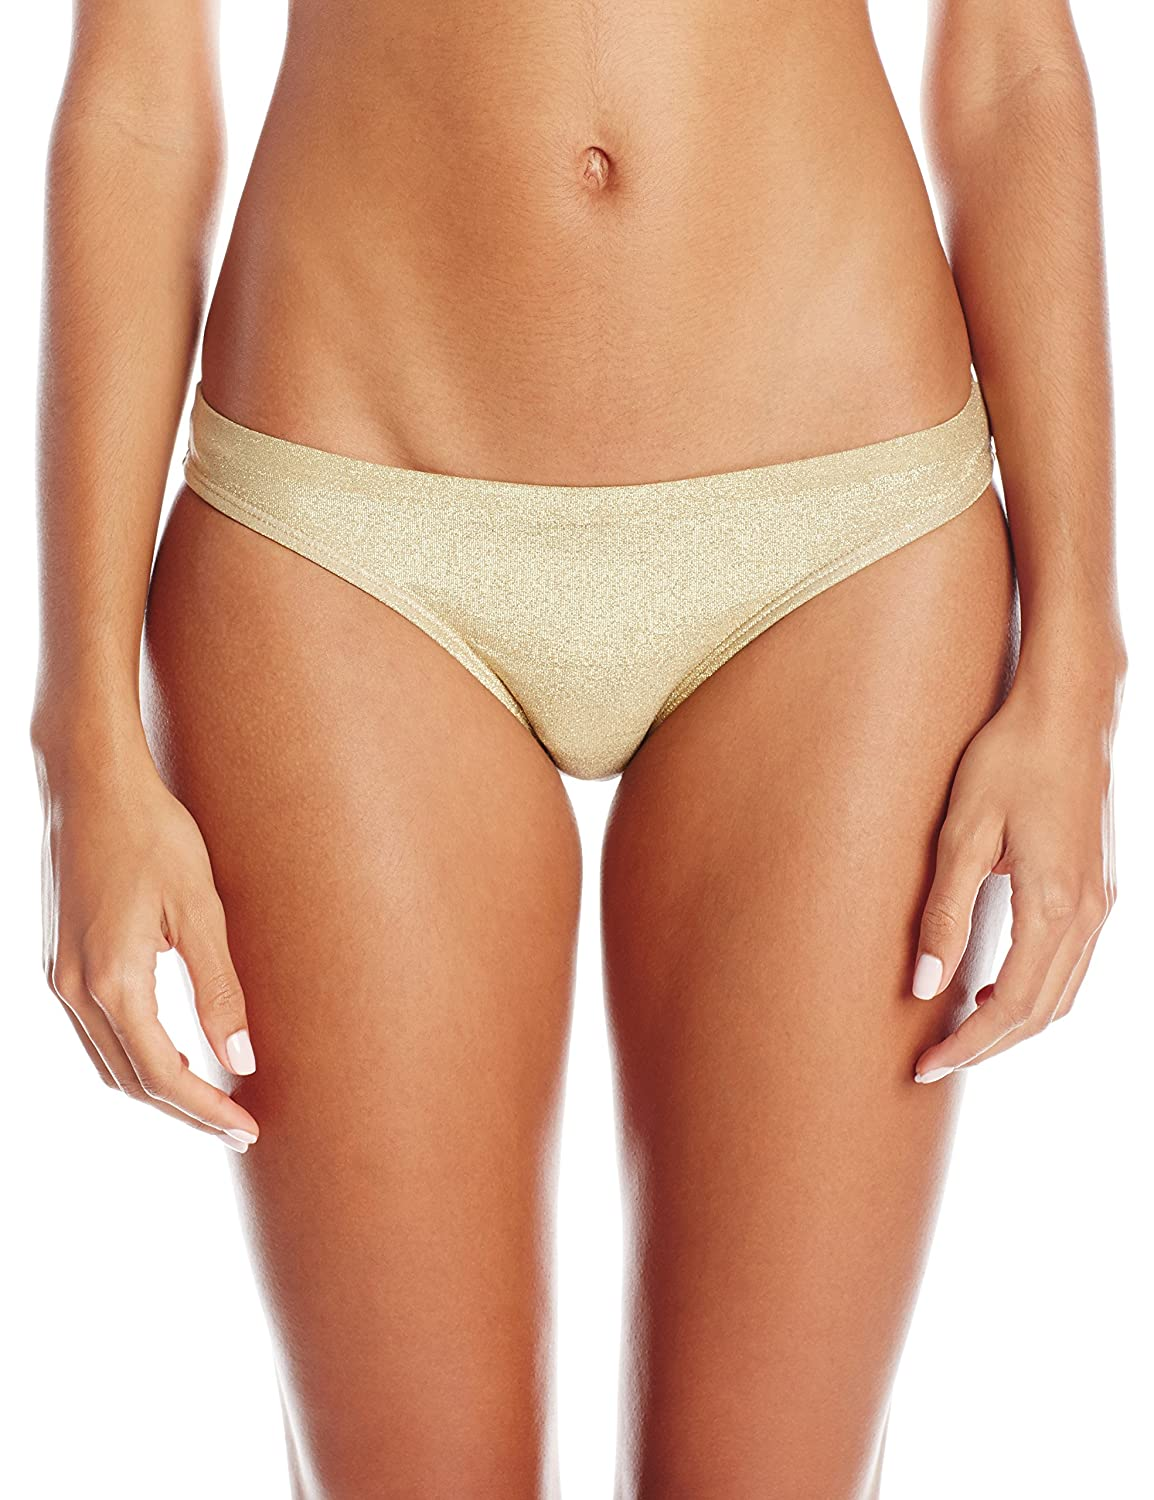 3f18edb4e505e Basic brief bikini bottoms that match any of our gold bikini tops. OndadeMar  was founded in 2000 in colombia as a luxury swimwear brand and has expanded  its ...